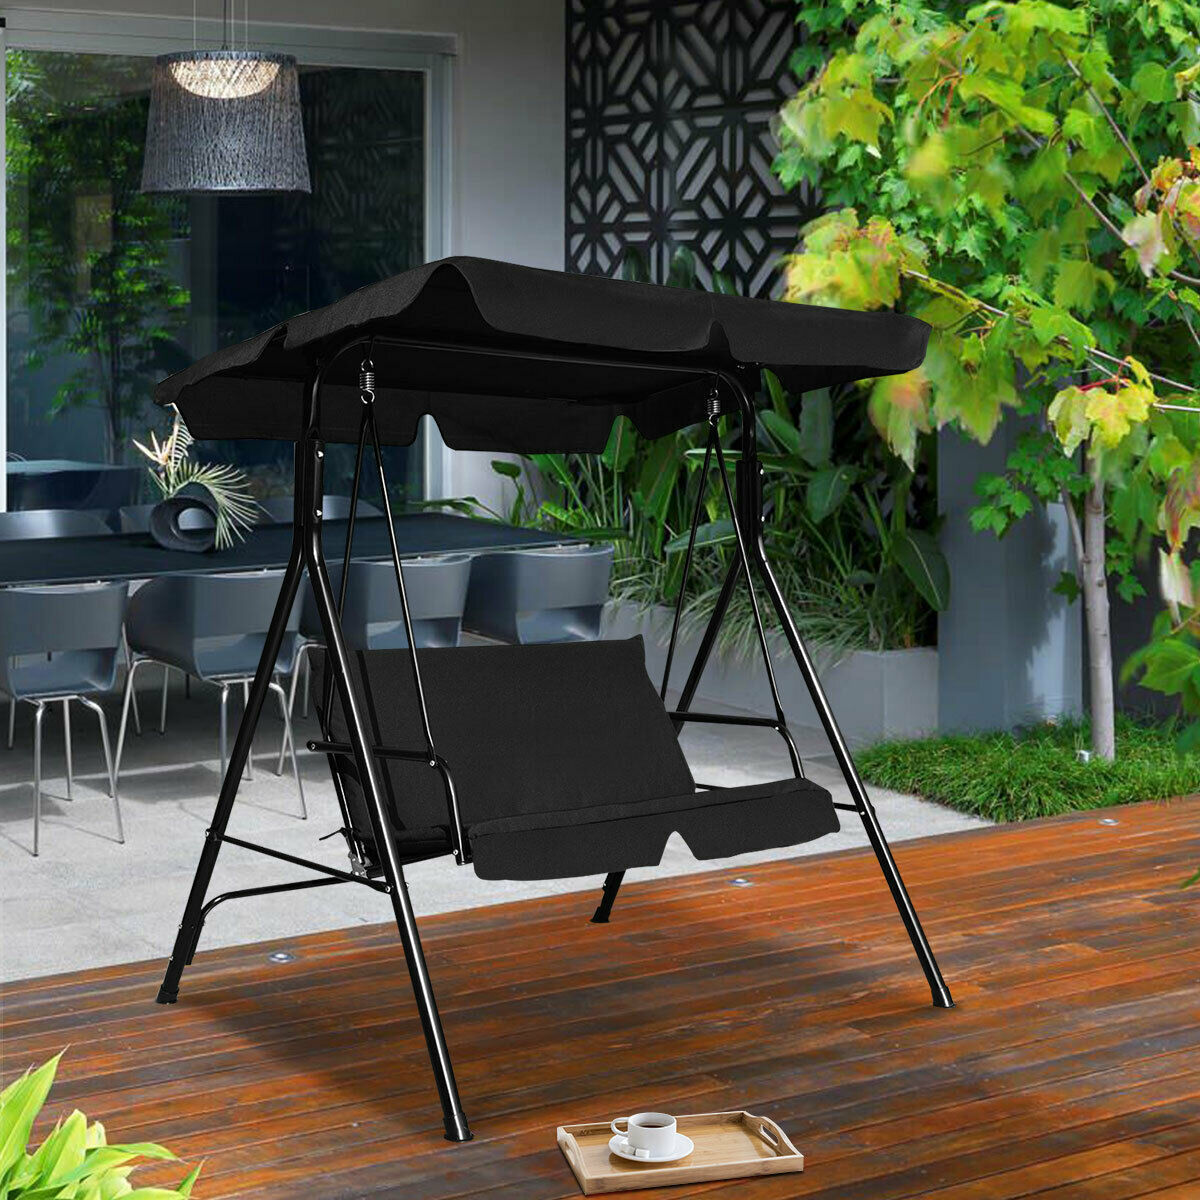 Picture of Outdoor 2 Person Patio Swing Black